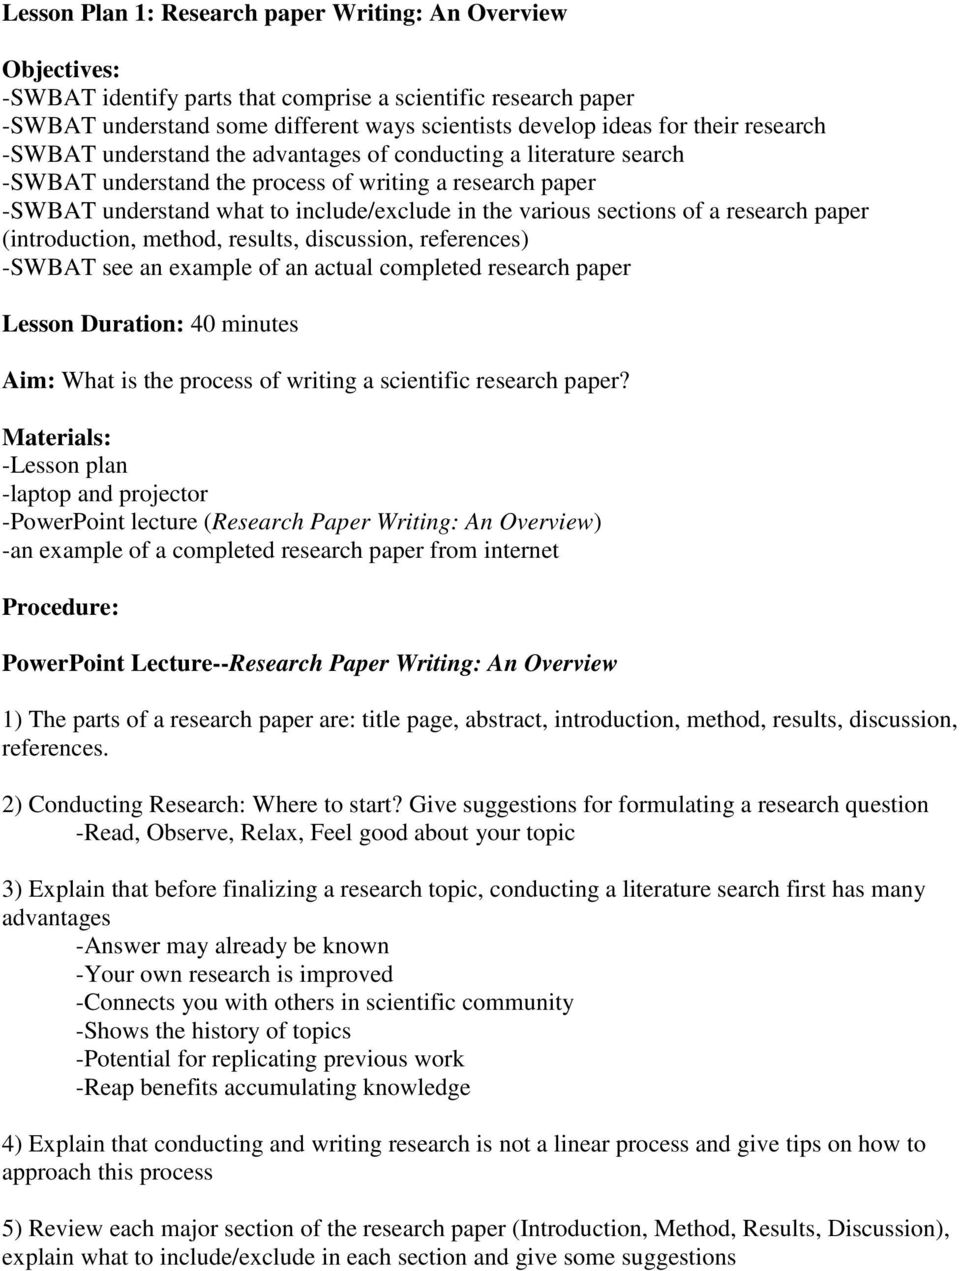 008 Page 1 Research Paper Parts Of Staggering Ppt A Qualitative Chapter Full